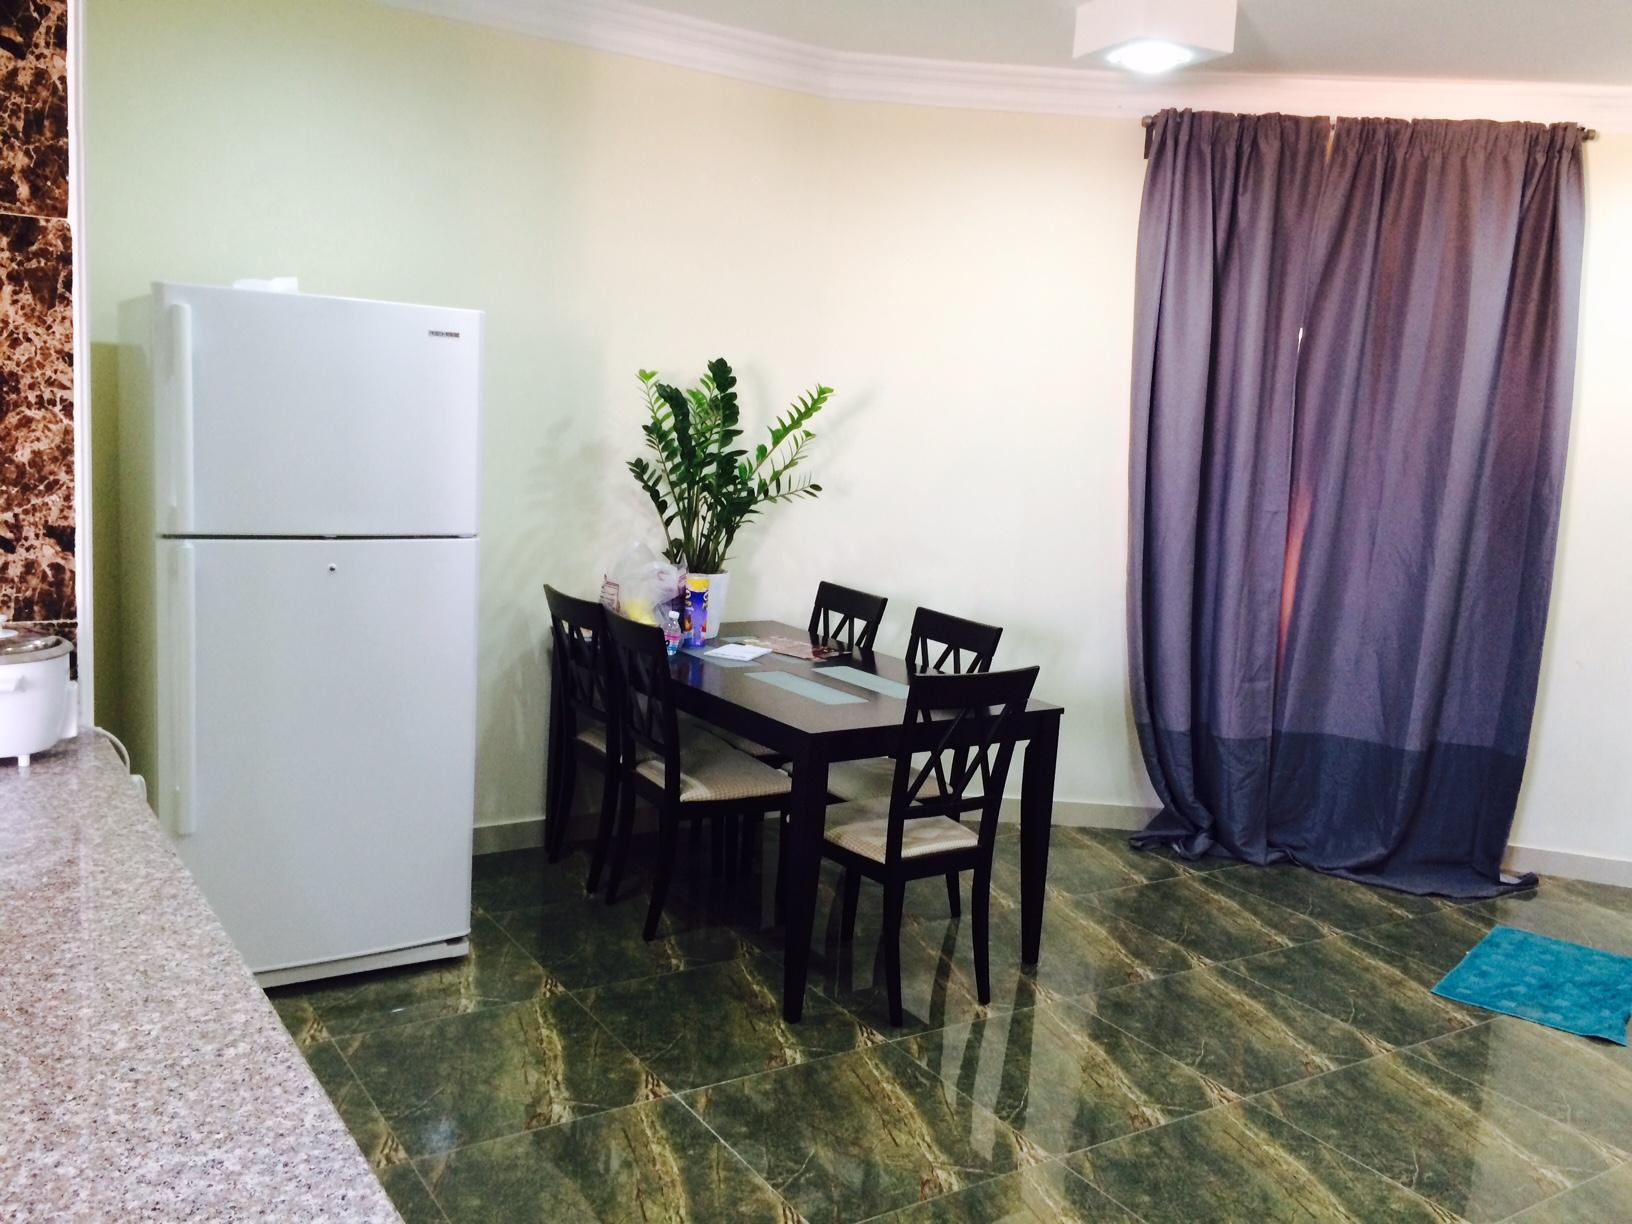 one bed room full furniture apartment, delux,